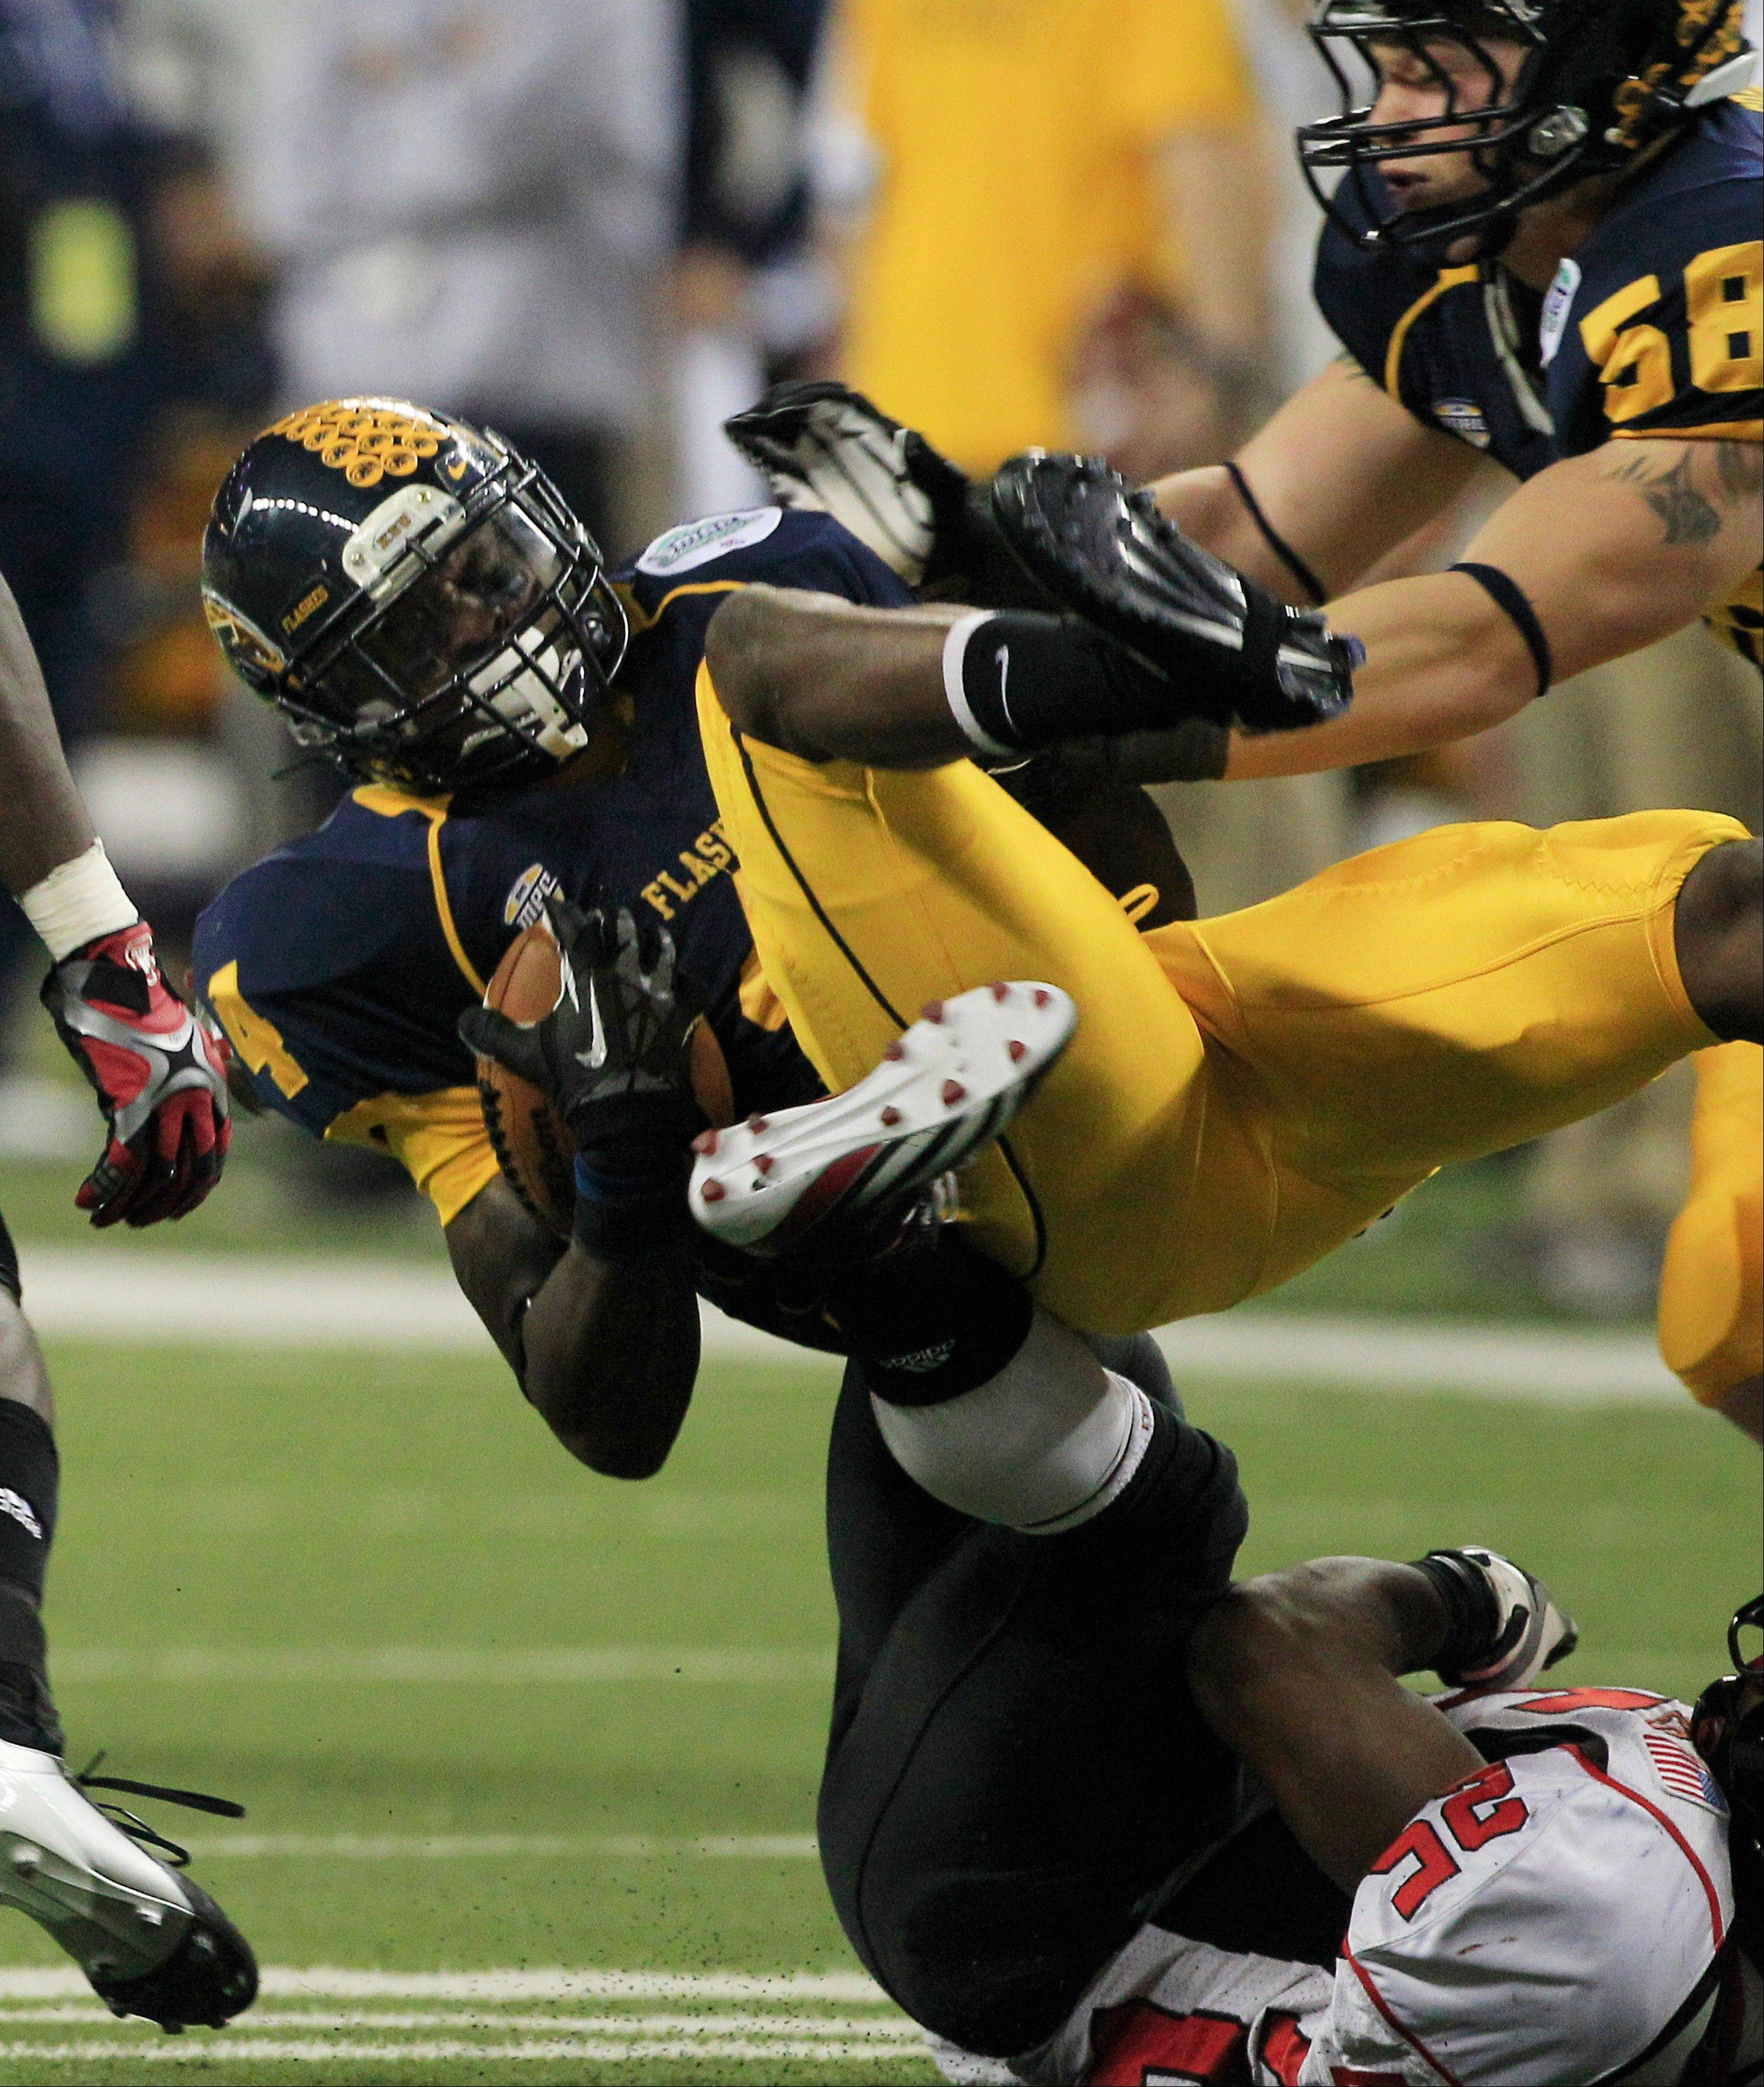 Kent State wide receiver Eric Adeyemi is upended by Northern Illinois' Giorgio Bowers Friday.